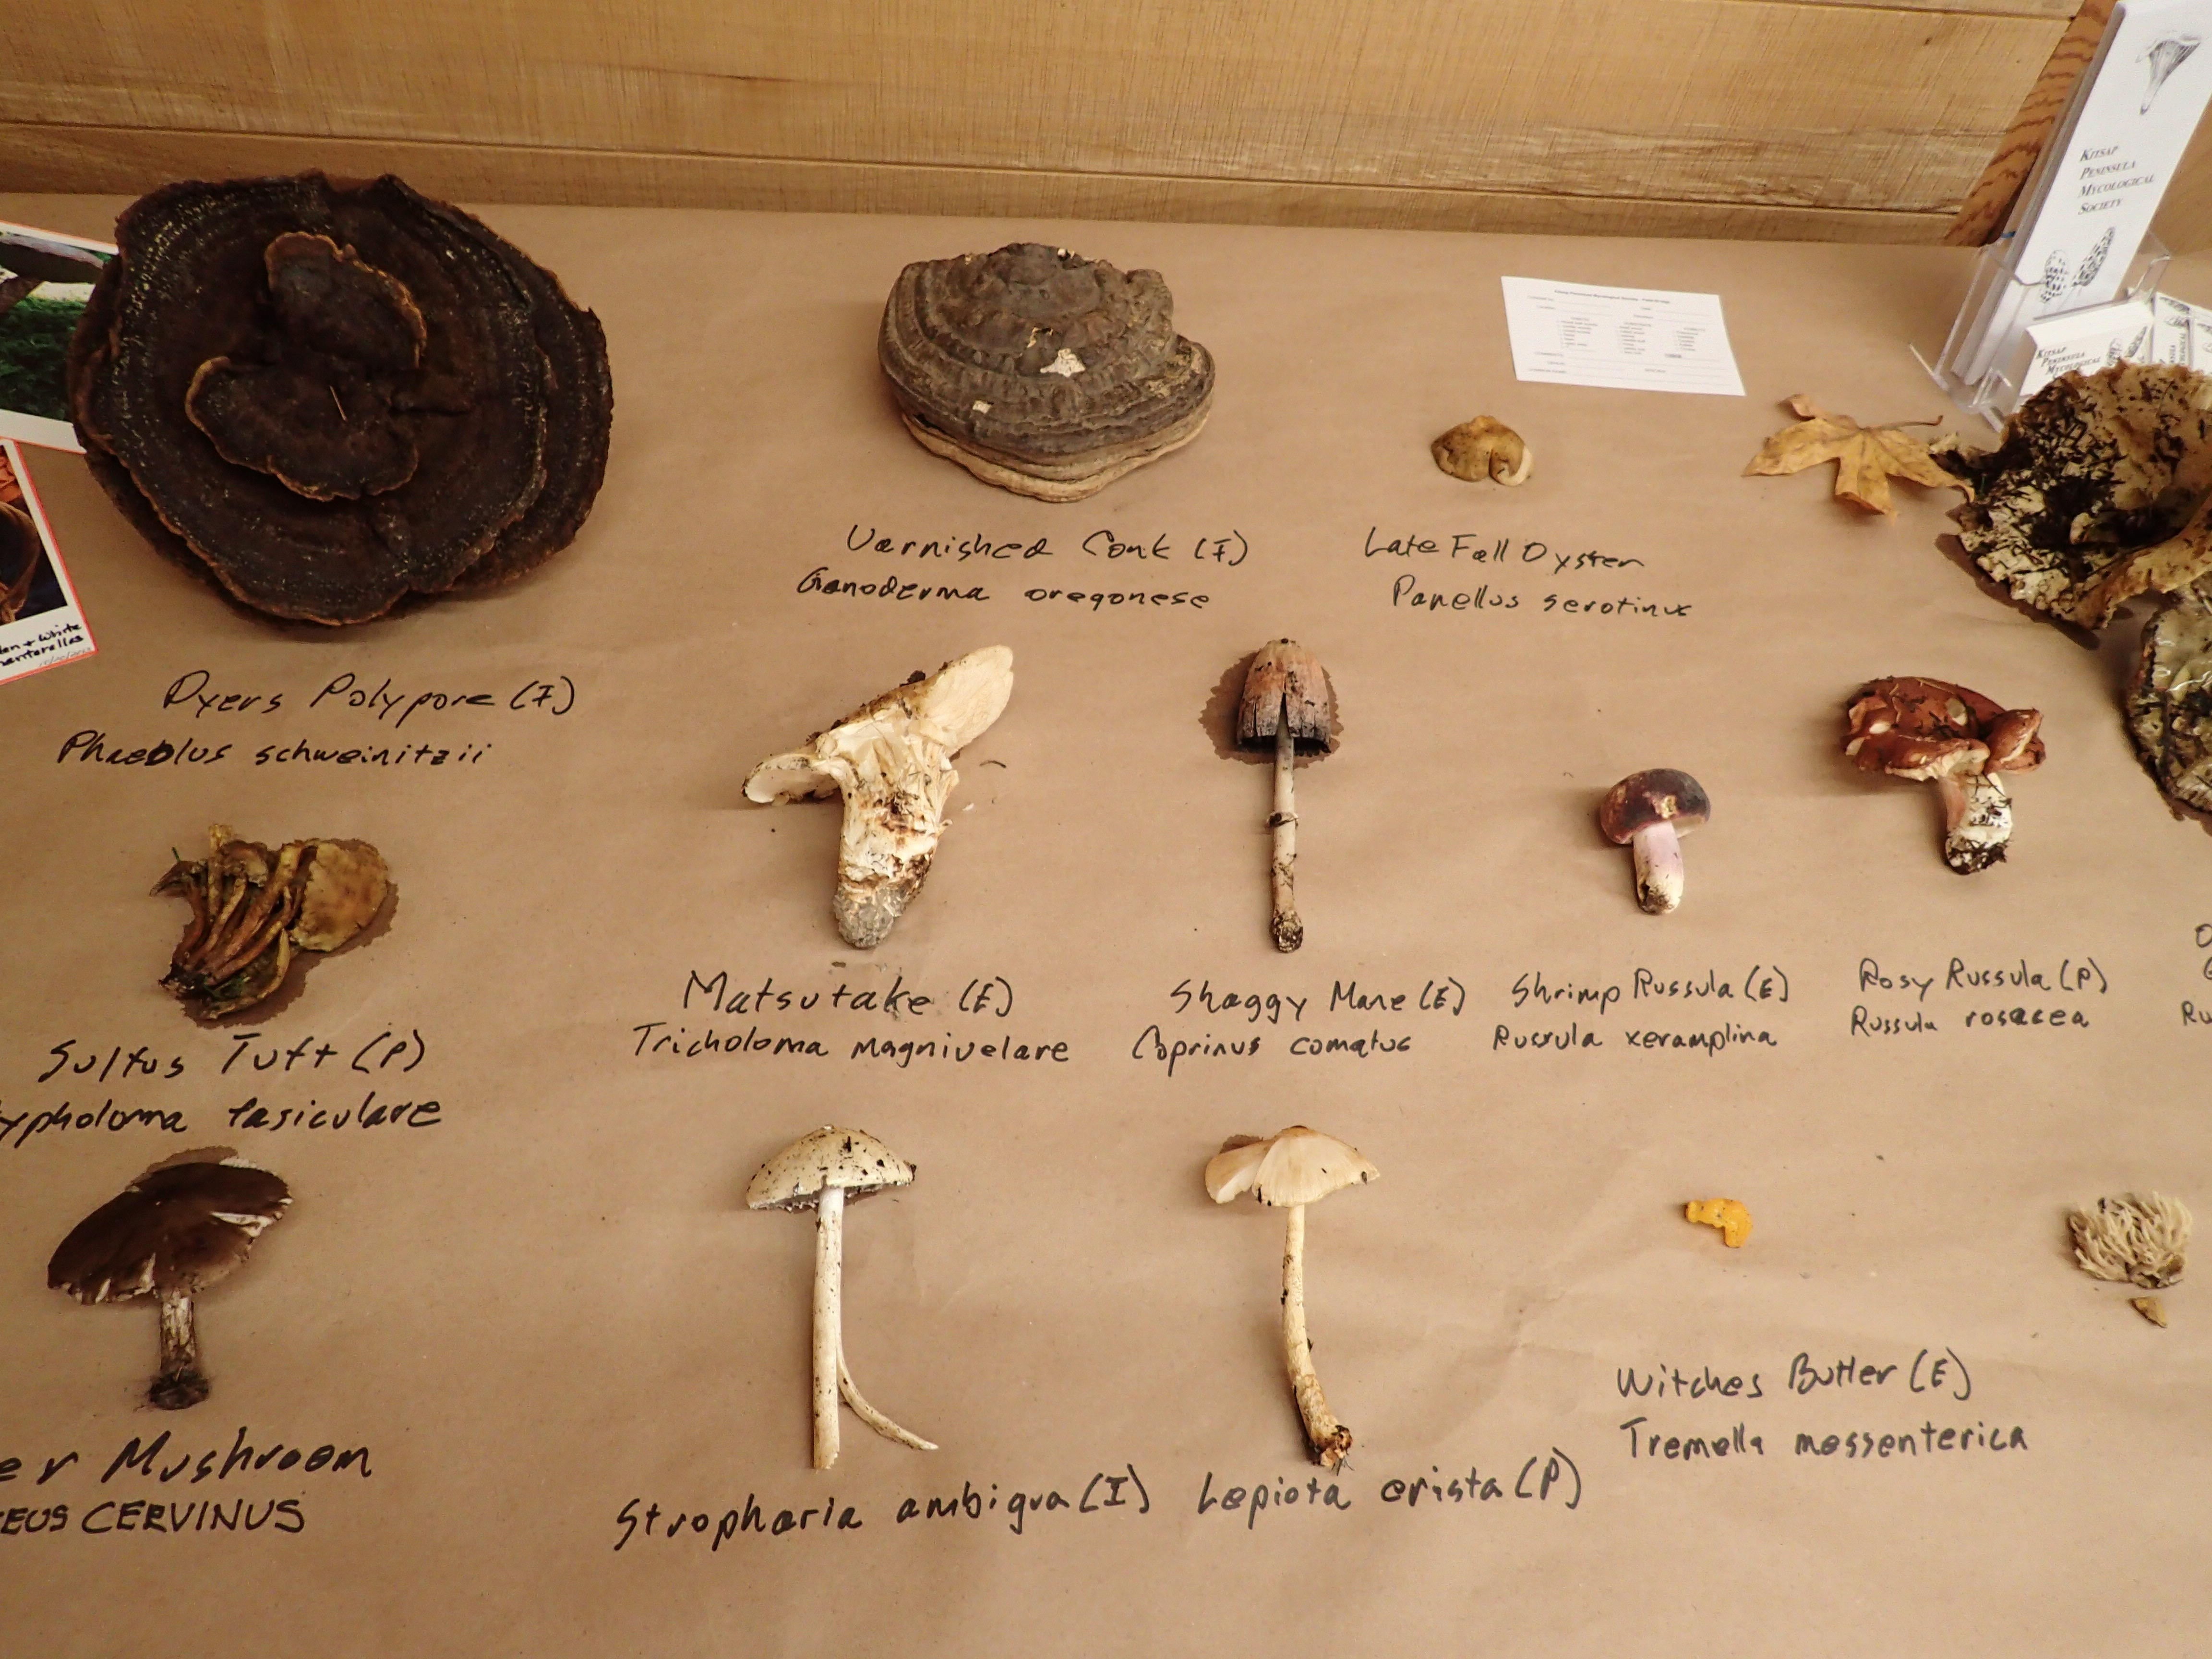 A selection of fungi discussed in last year's Mushroom Mania lecture.